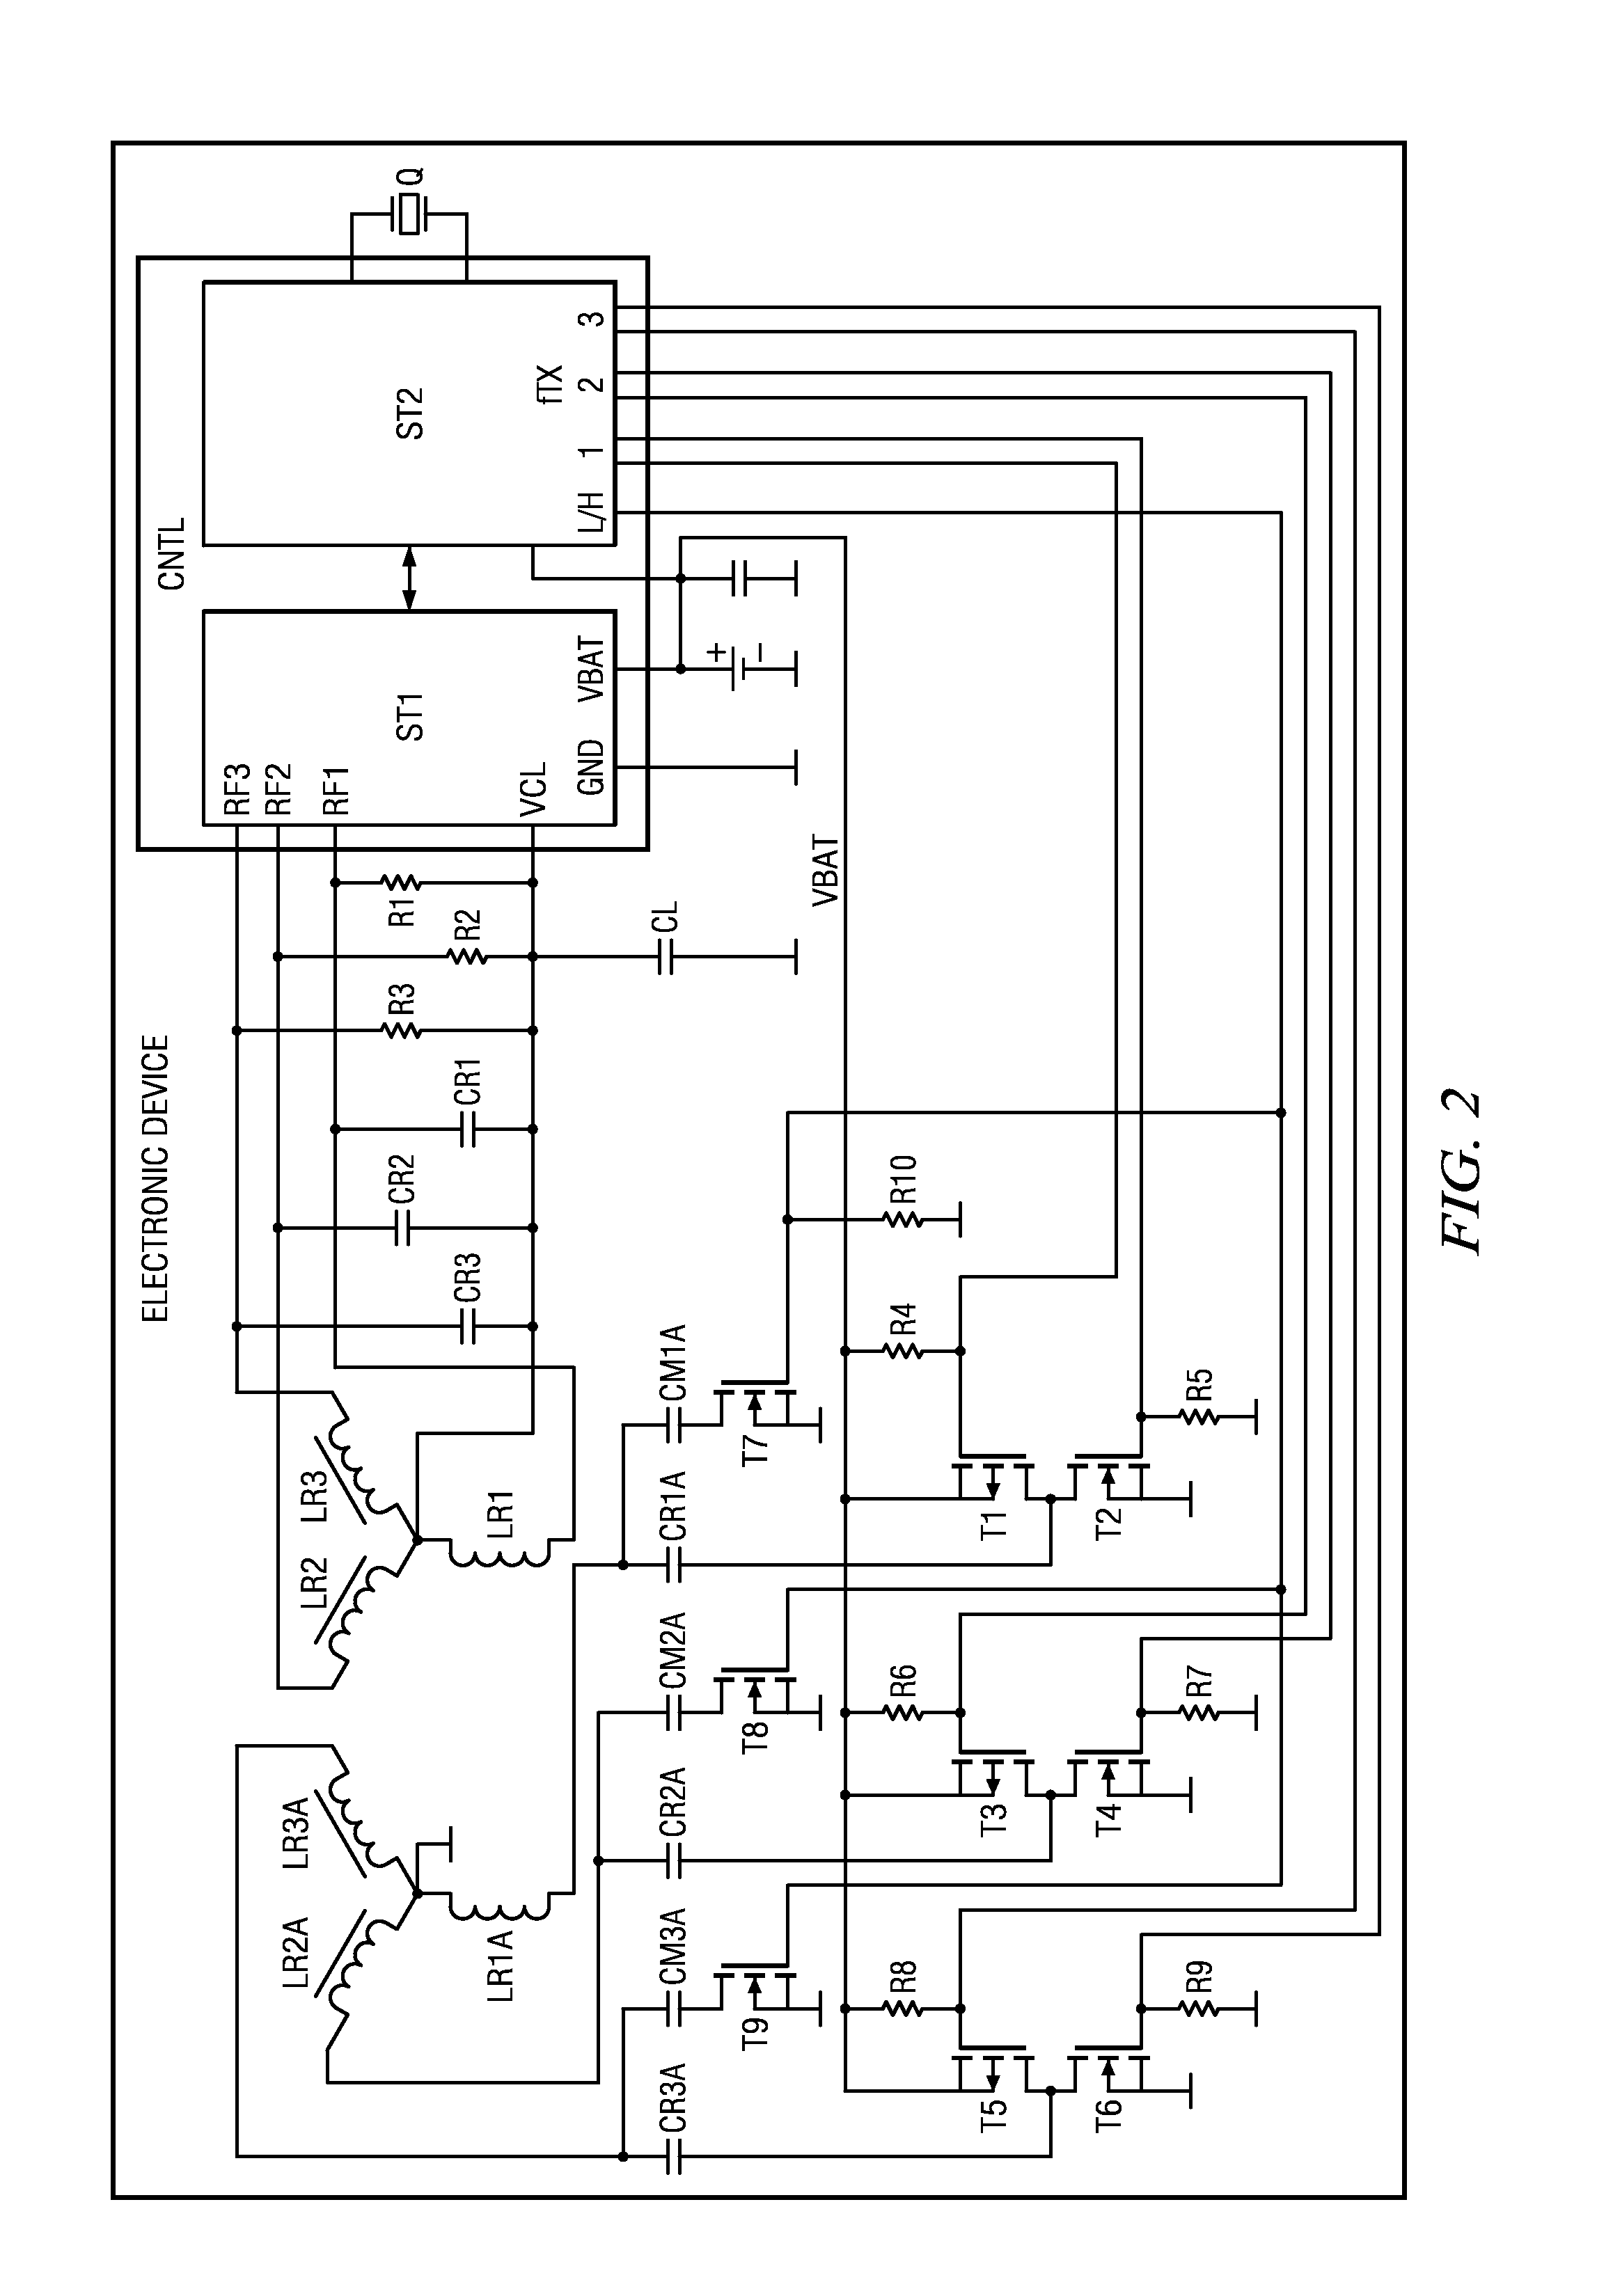 Patent Us20130107762 Electronic Device Method And System For Half Duplex Rfid Mini Transponders Drawing